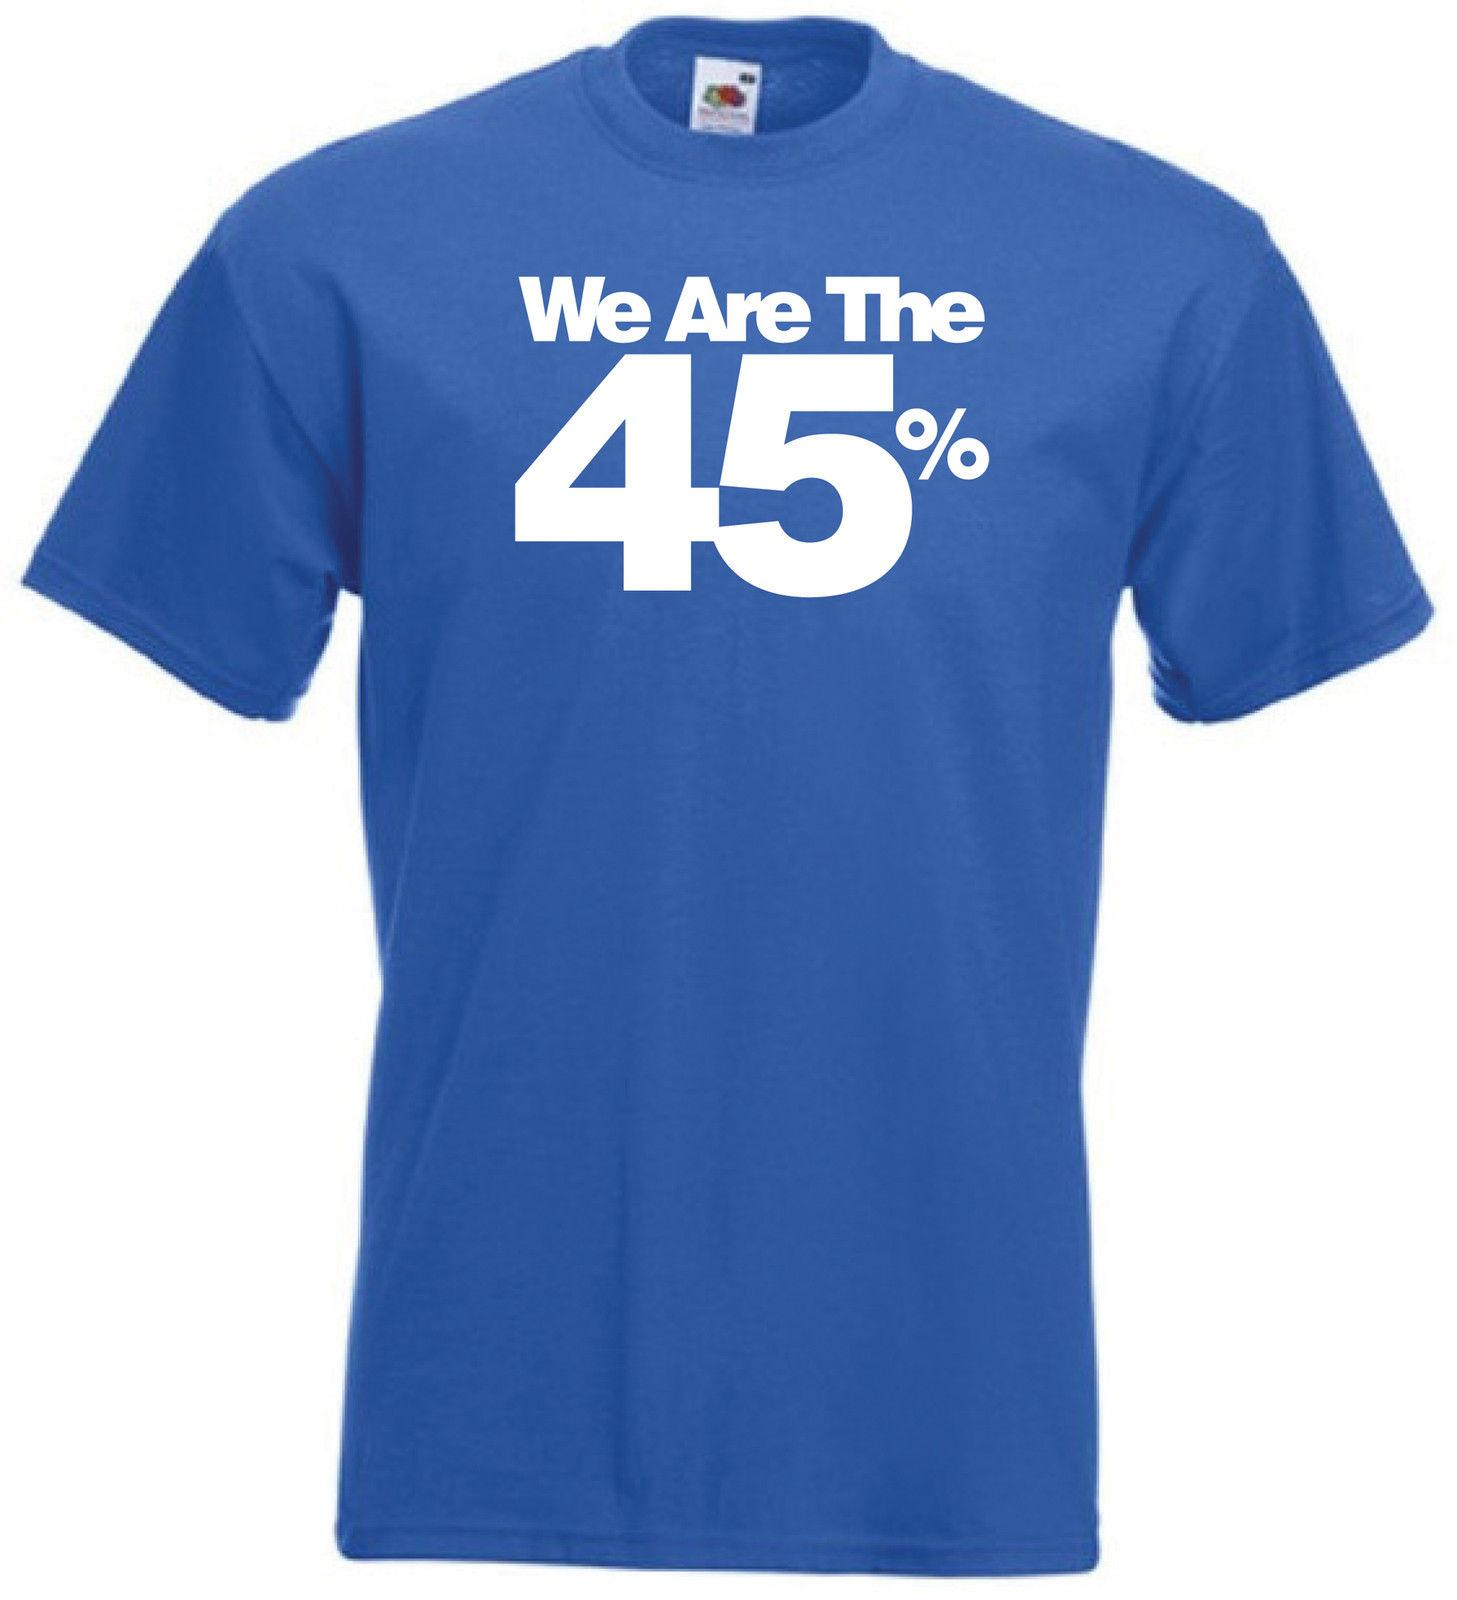 6f22f6441d2531 We Are The 45 % T Shirt Scotland Scottish Independence Yes Campaign All  SizesFunny Unisex Casual Tshirt Shopping T Shirts Amusing T Shirts From  Burnthebeans ...